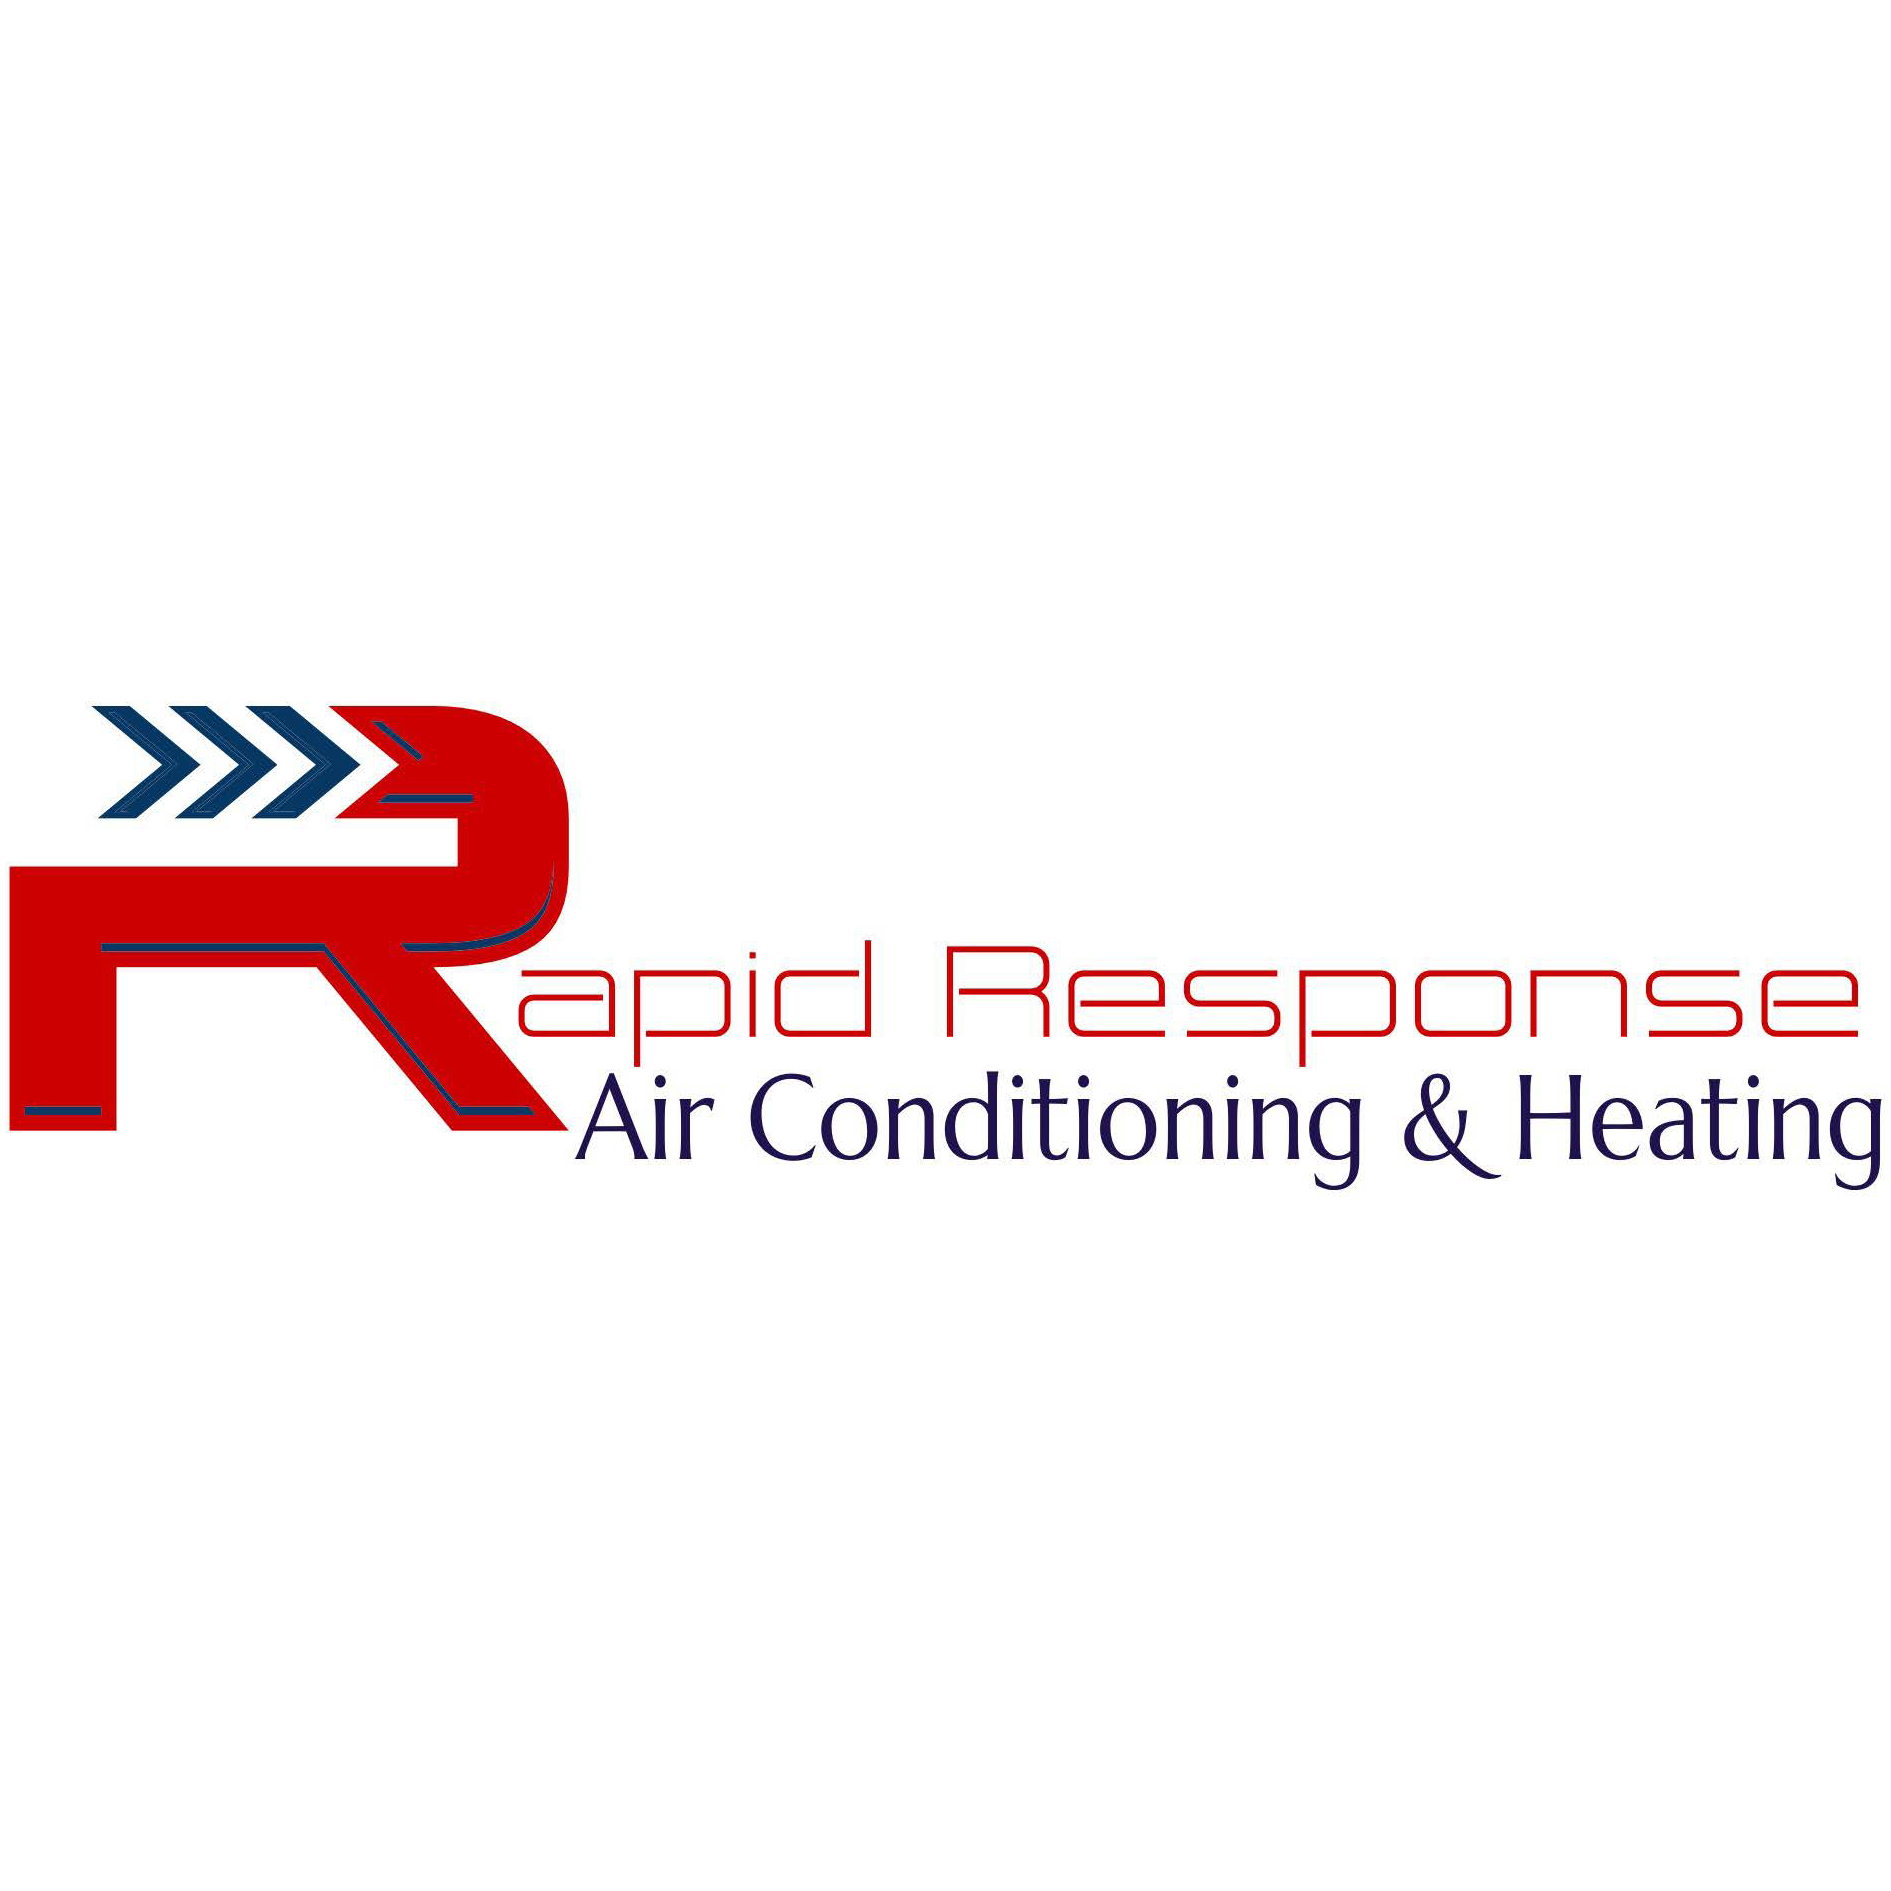 RAPID RESPONSE A/C AND HEATING